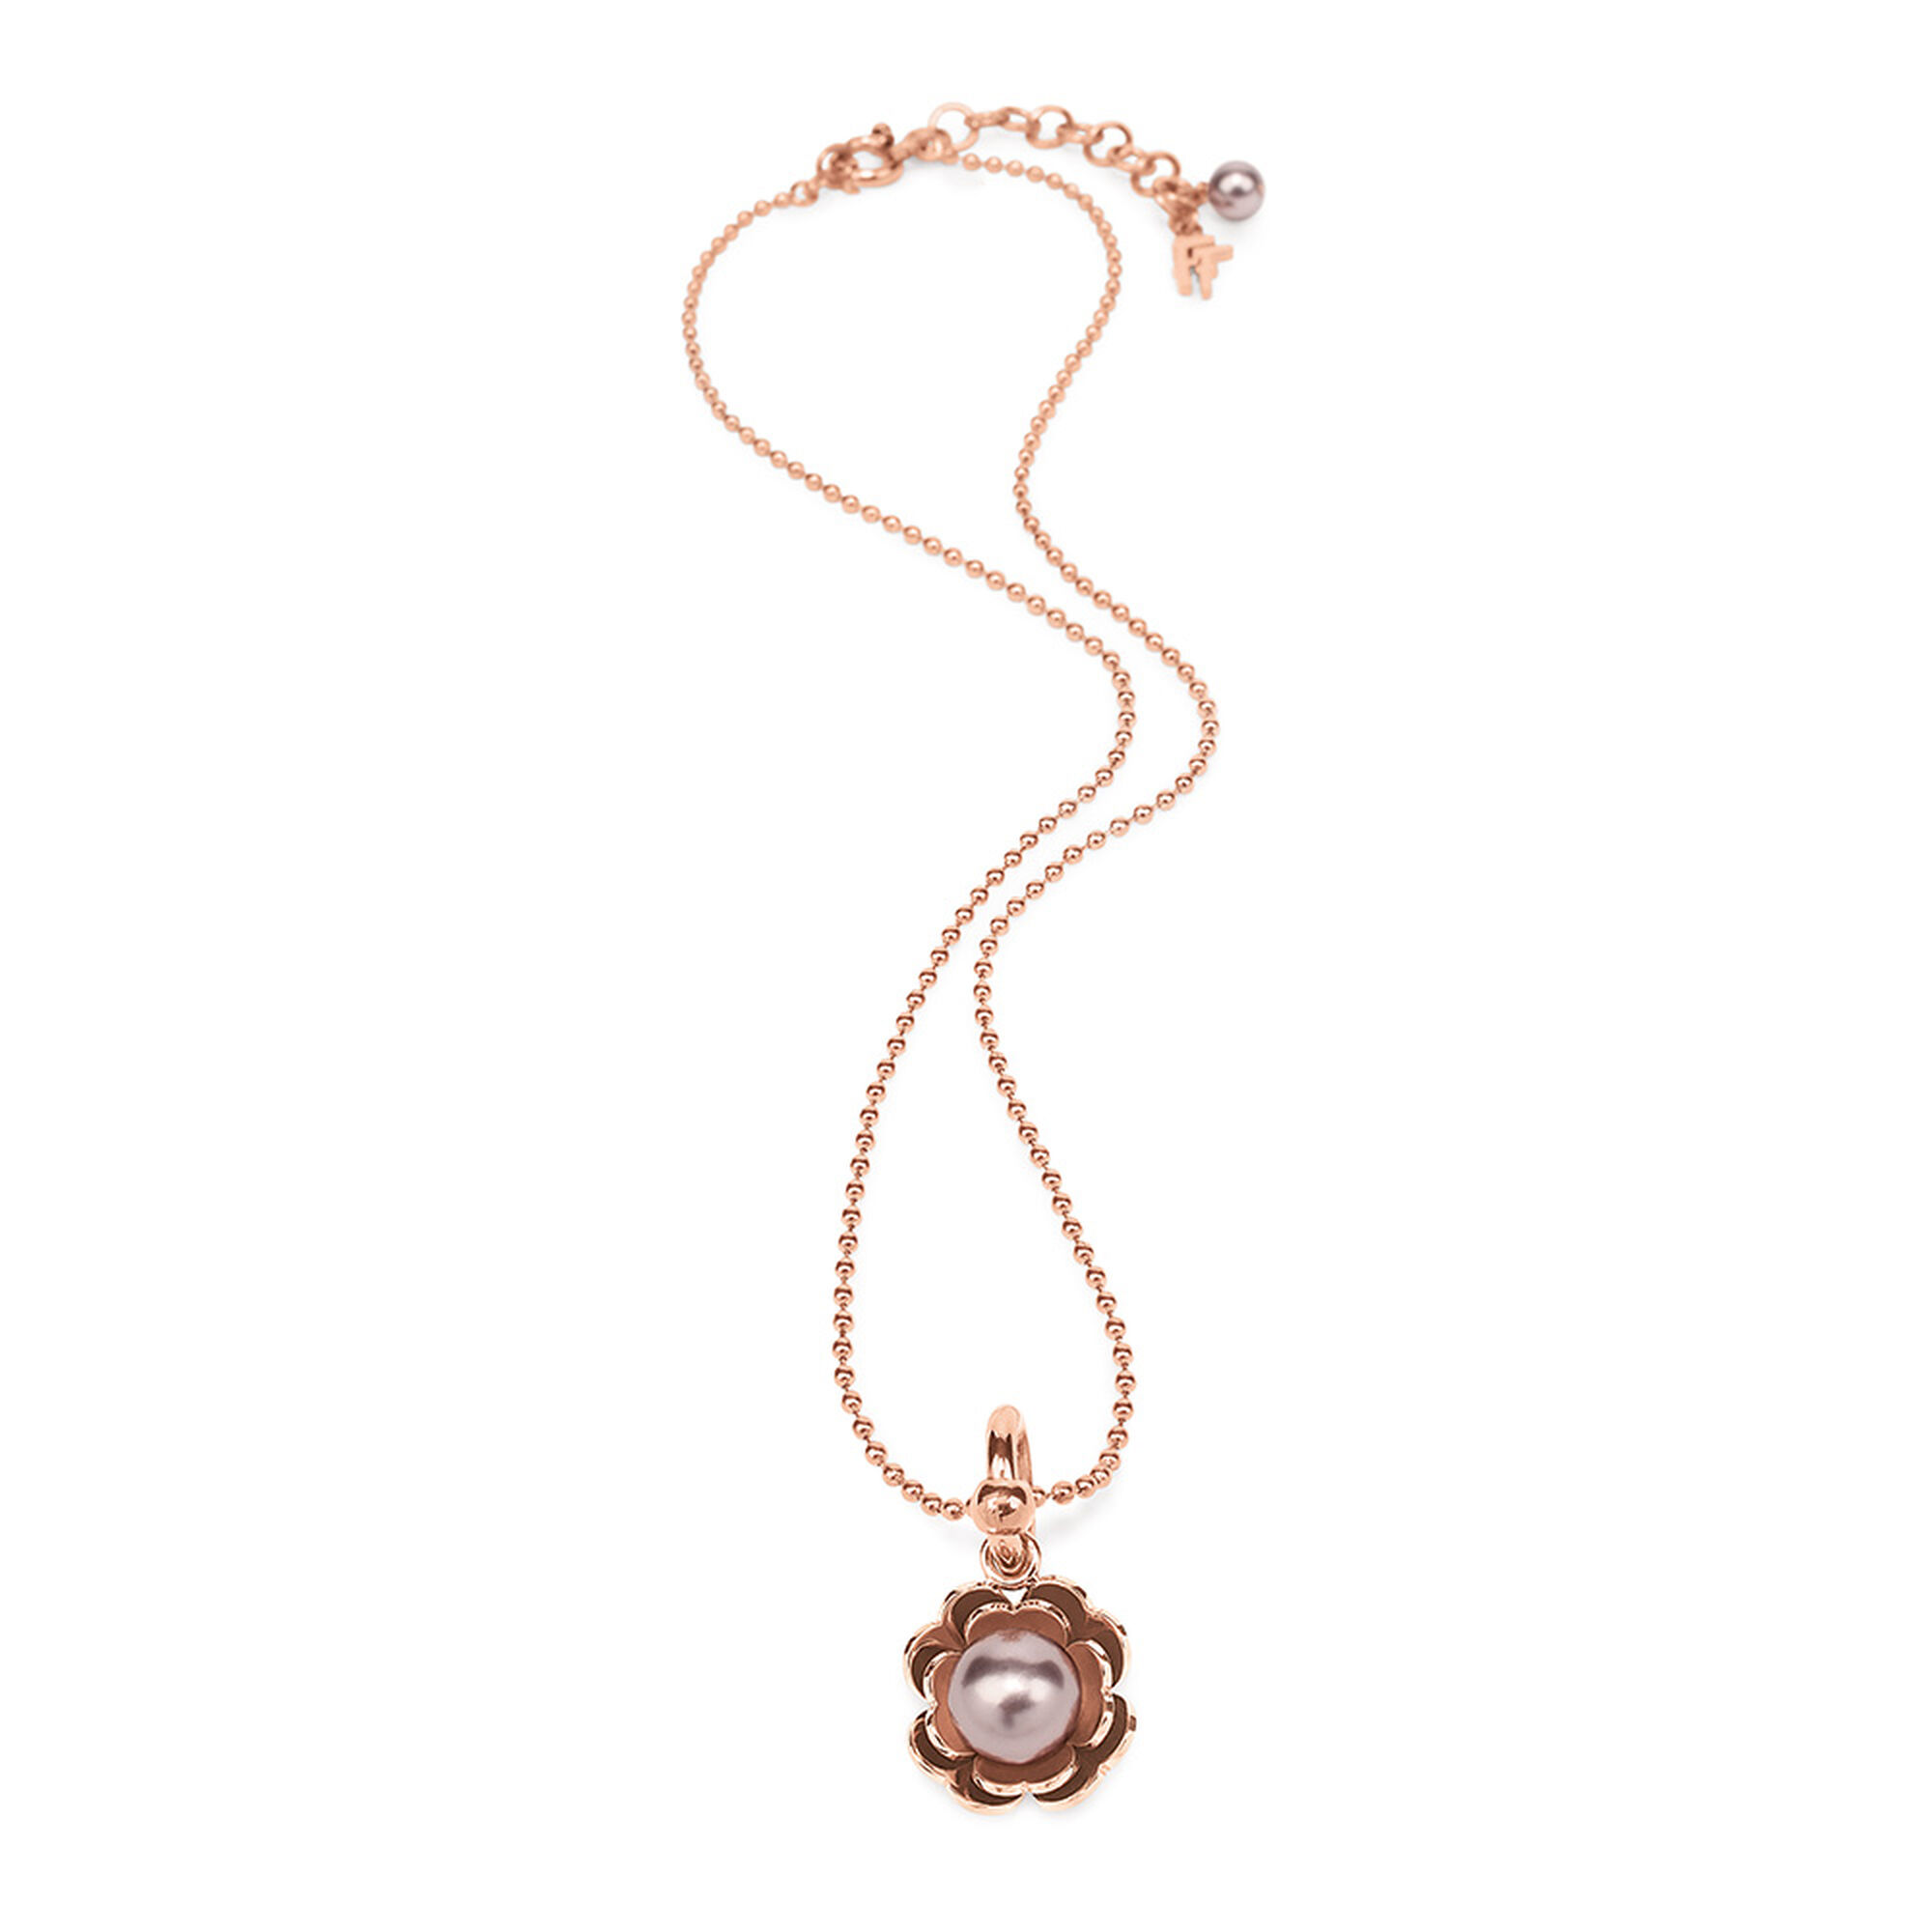 necklace silver pink original worters in claudette by claudetteworters pearl blush product pendant